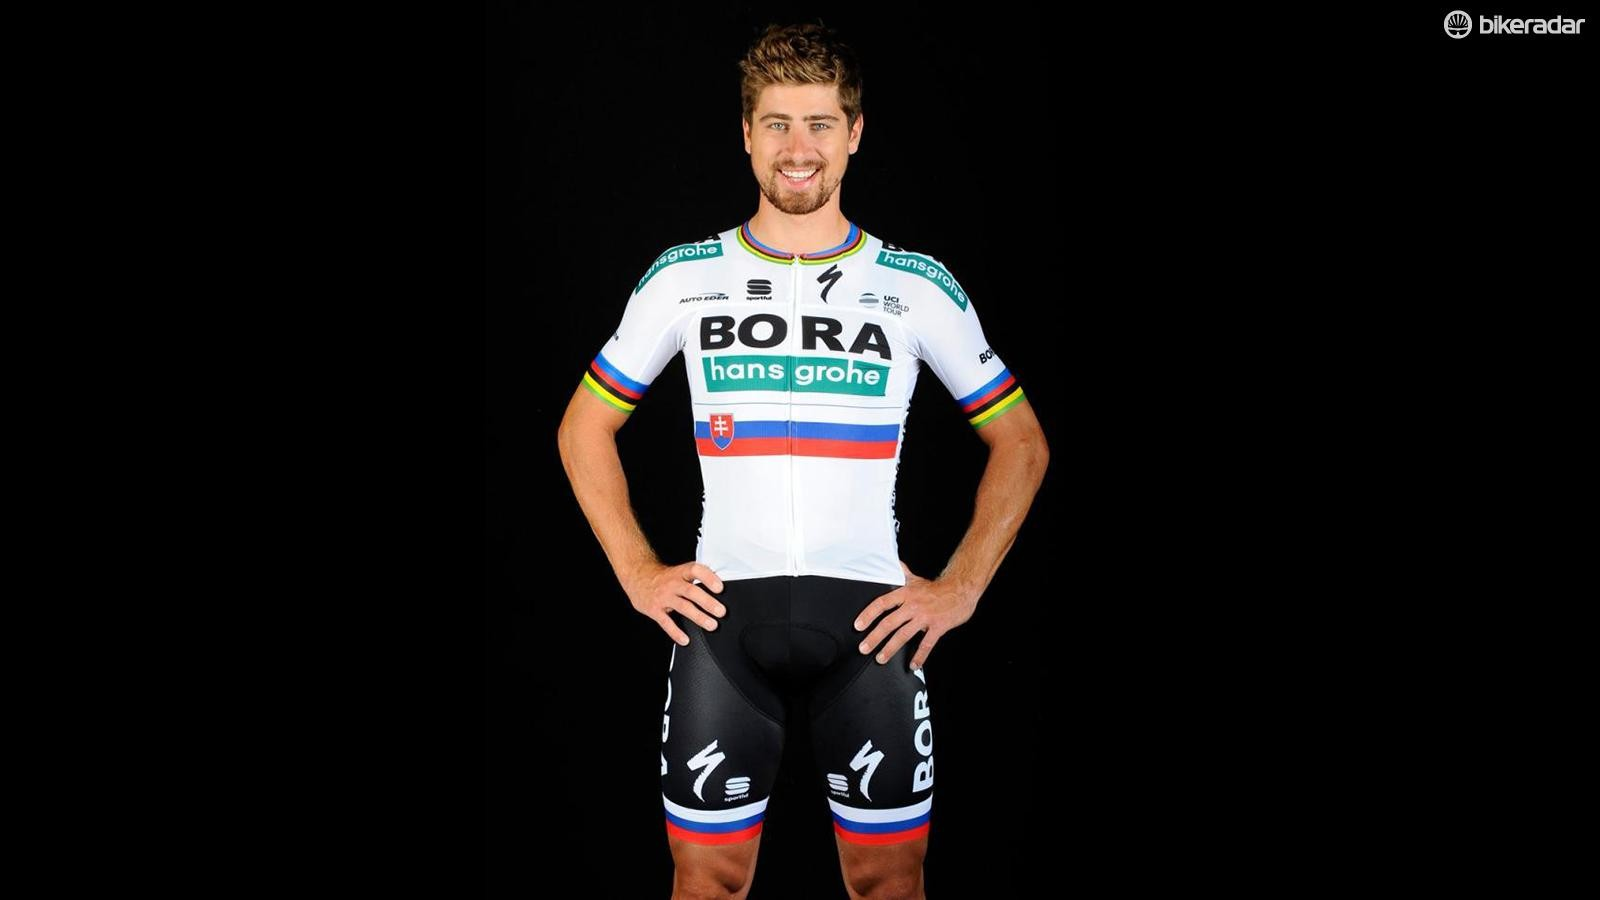 A full look at Peter Sagan's new kit